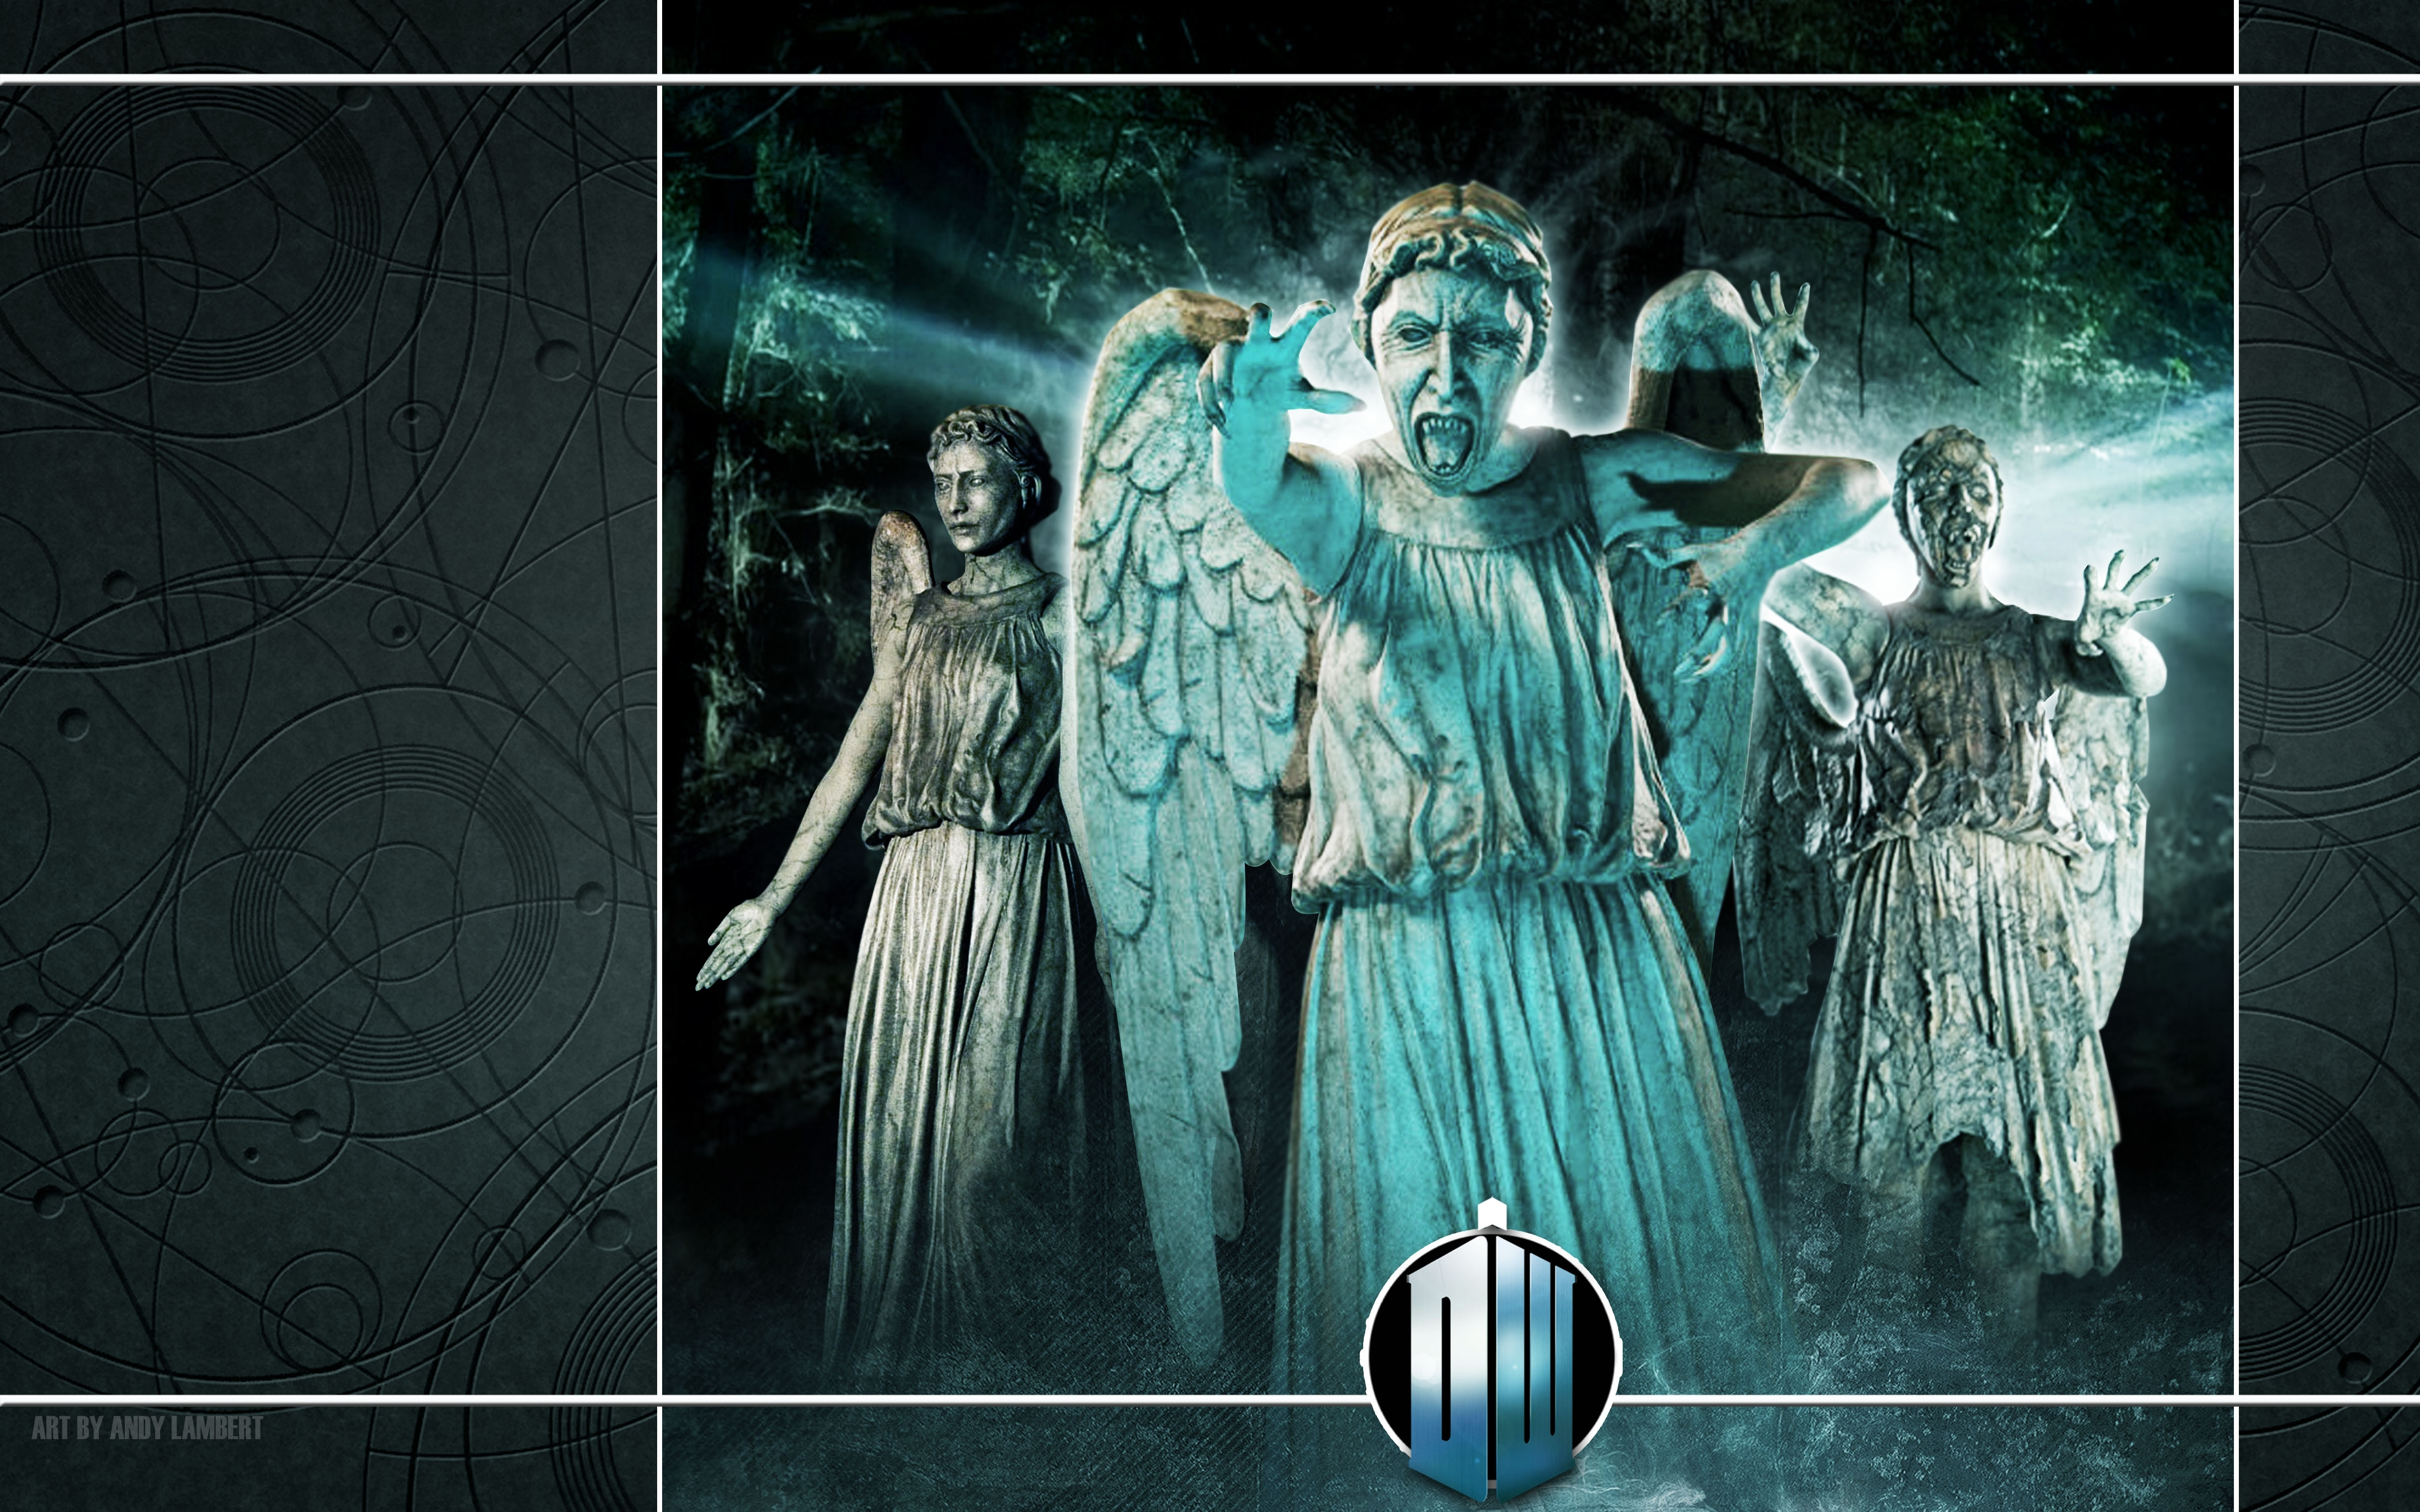 Free Download Doctor Who Weeping Angel 4850x3031 Wallpaper